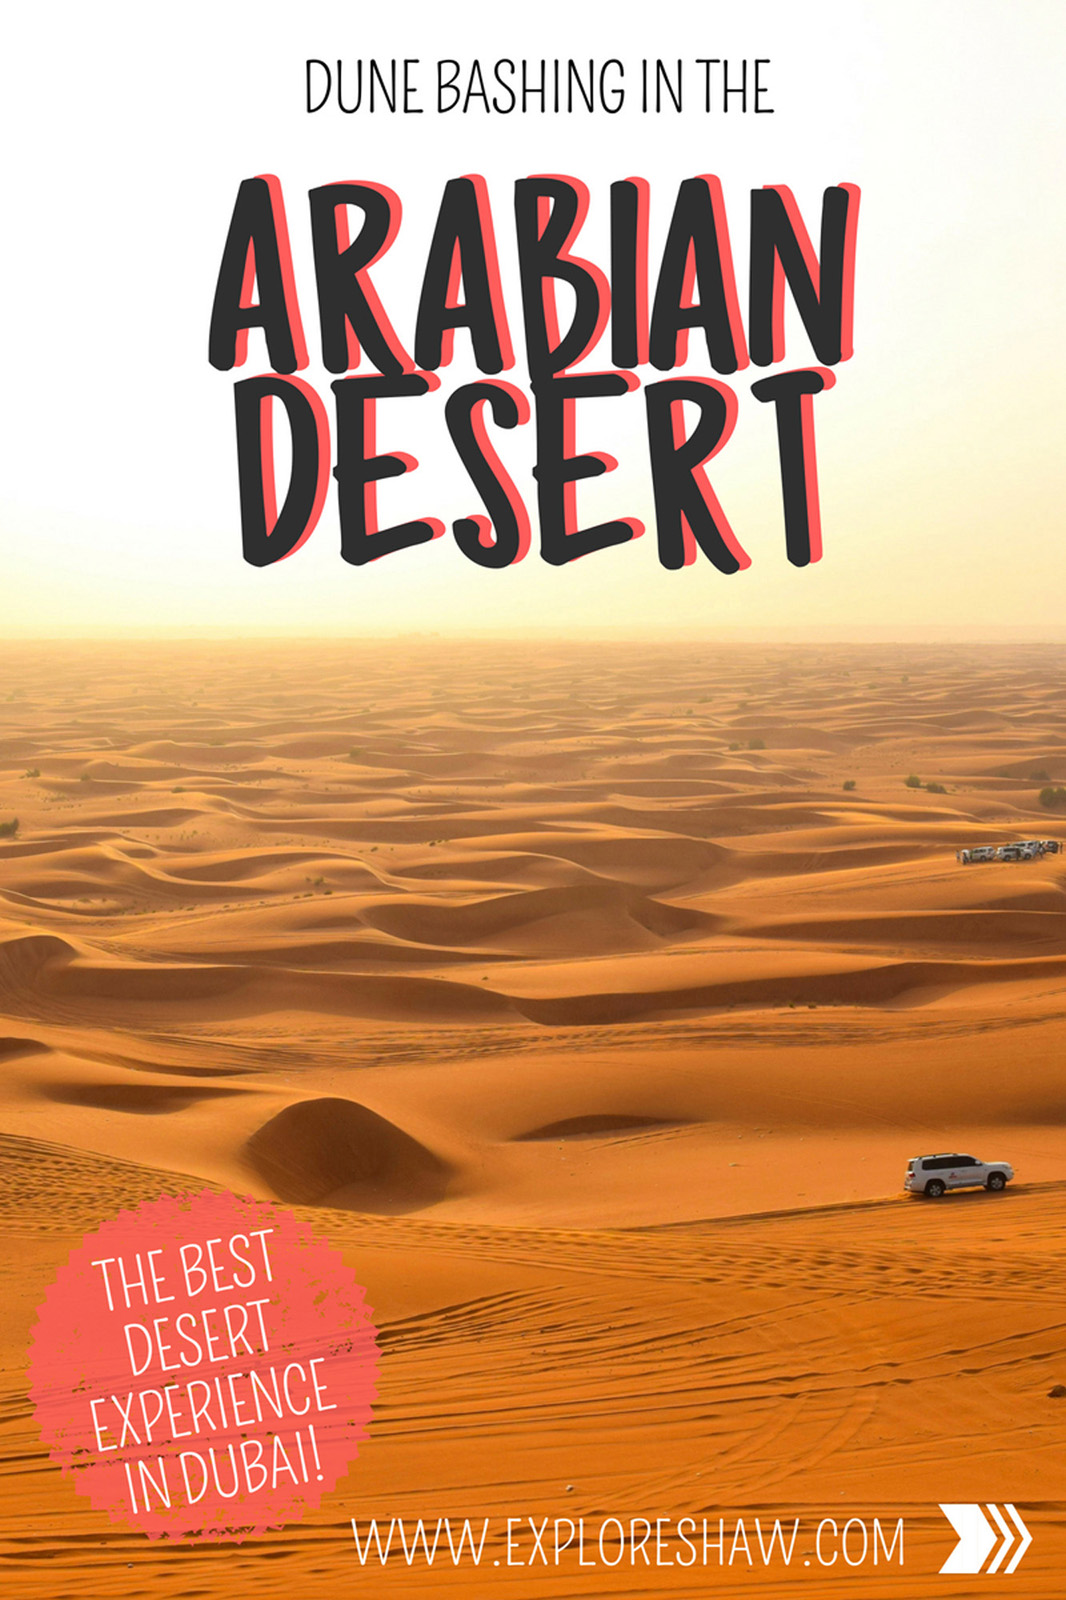 DUNE BASHING THROUGH THE ARABIAN DESERT